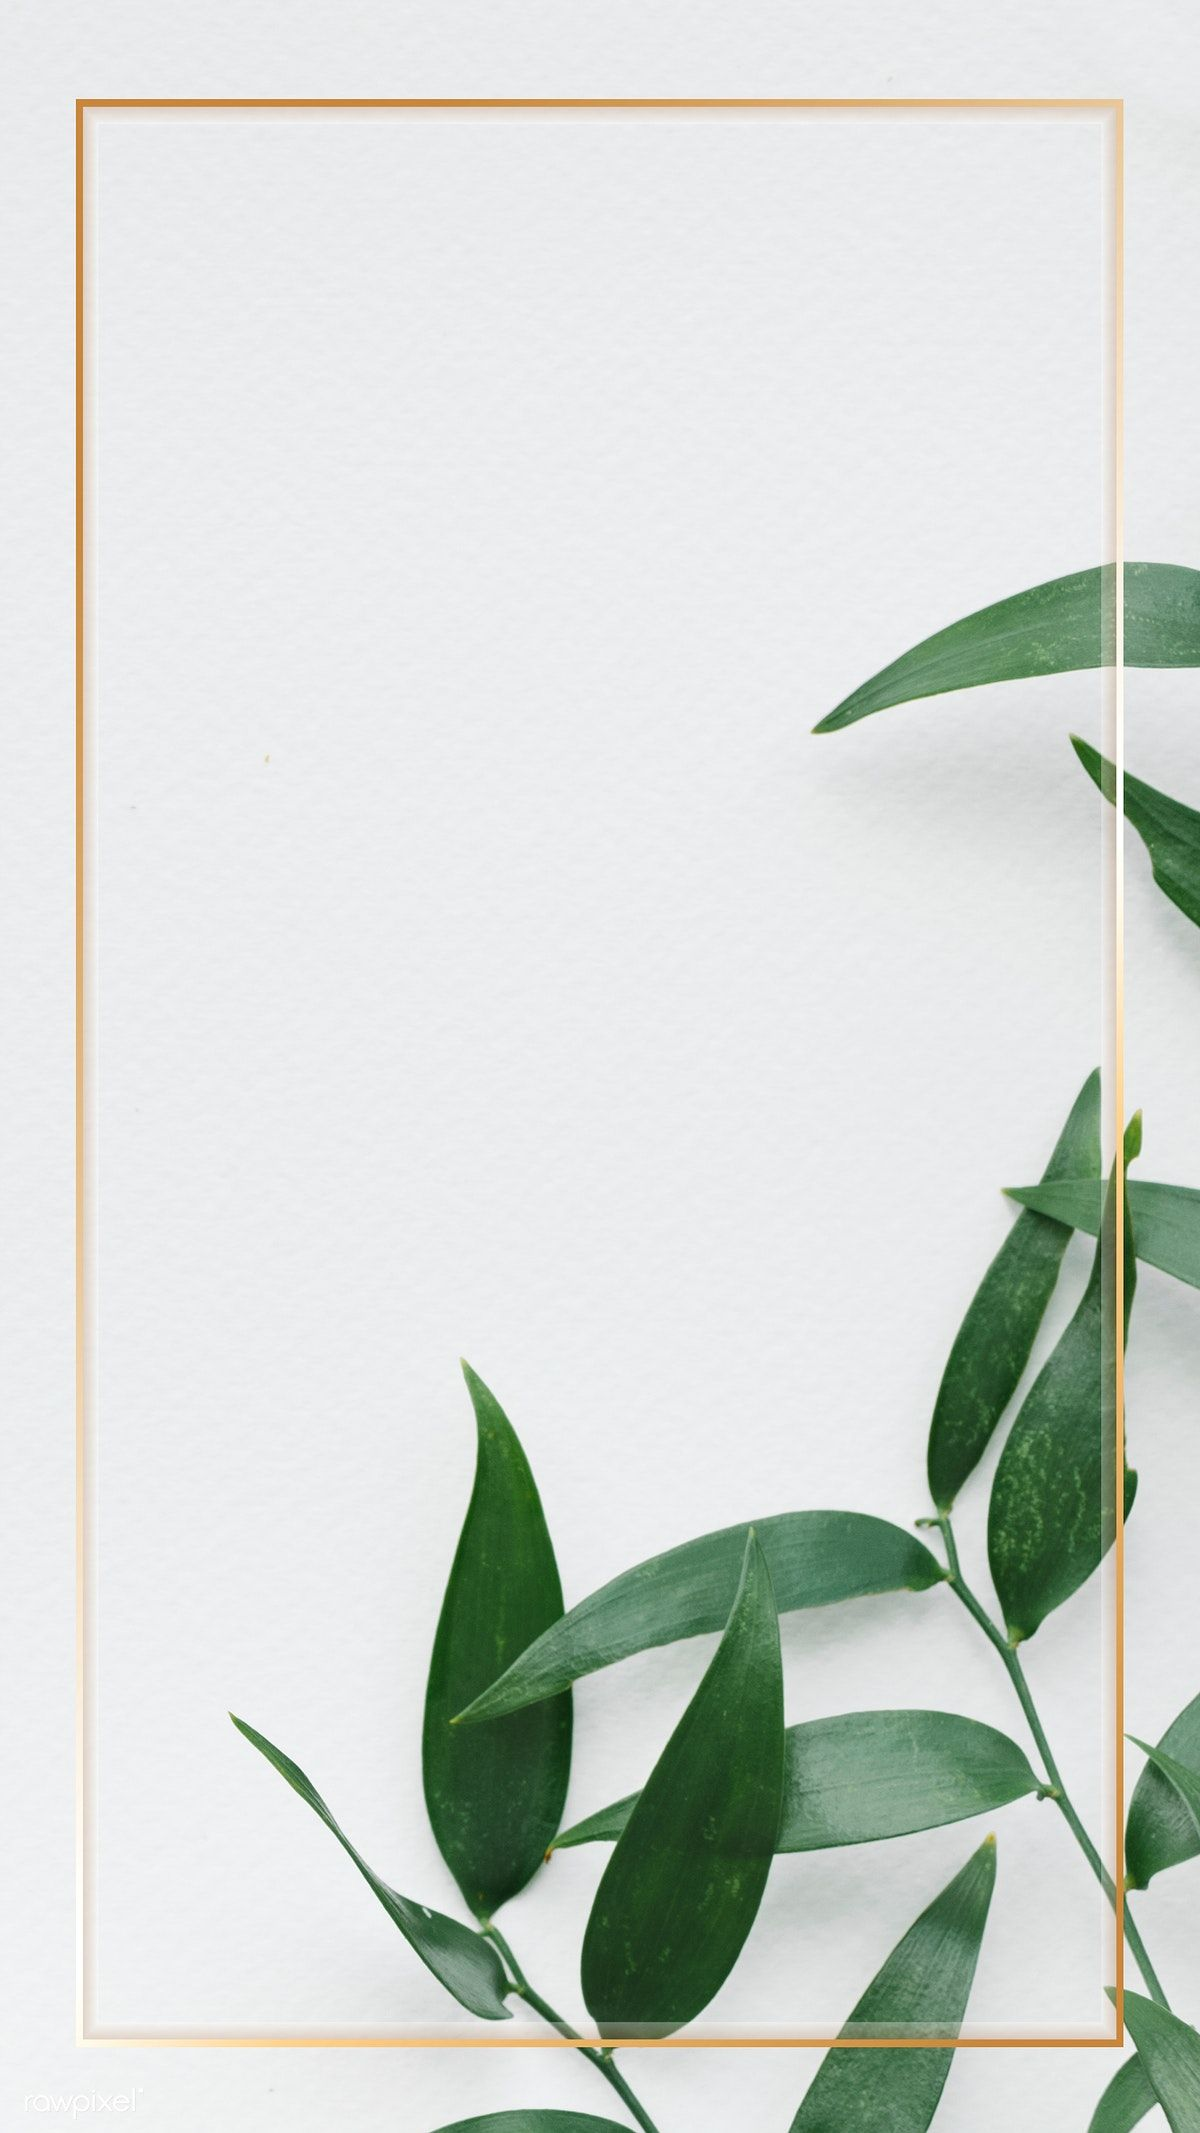 Download Premium Psd Of Gold Frame Over Green Leaves On A White Wall In 2020 Green Leaf Wallpaper Leaves Wallpaper Iphone Green Wallpaper